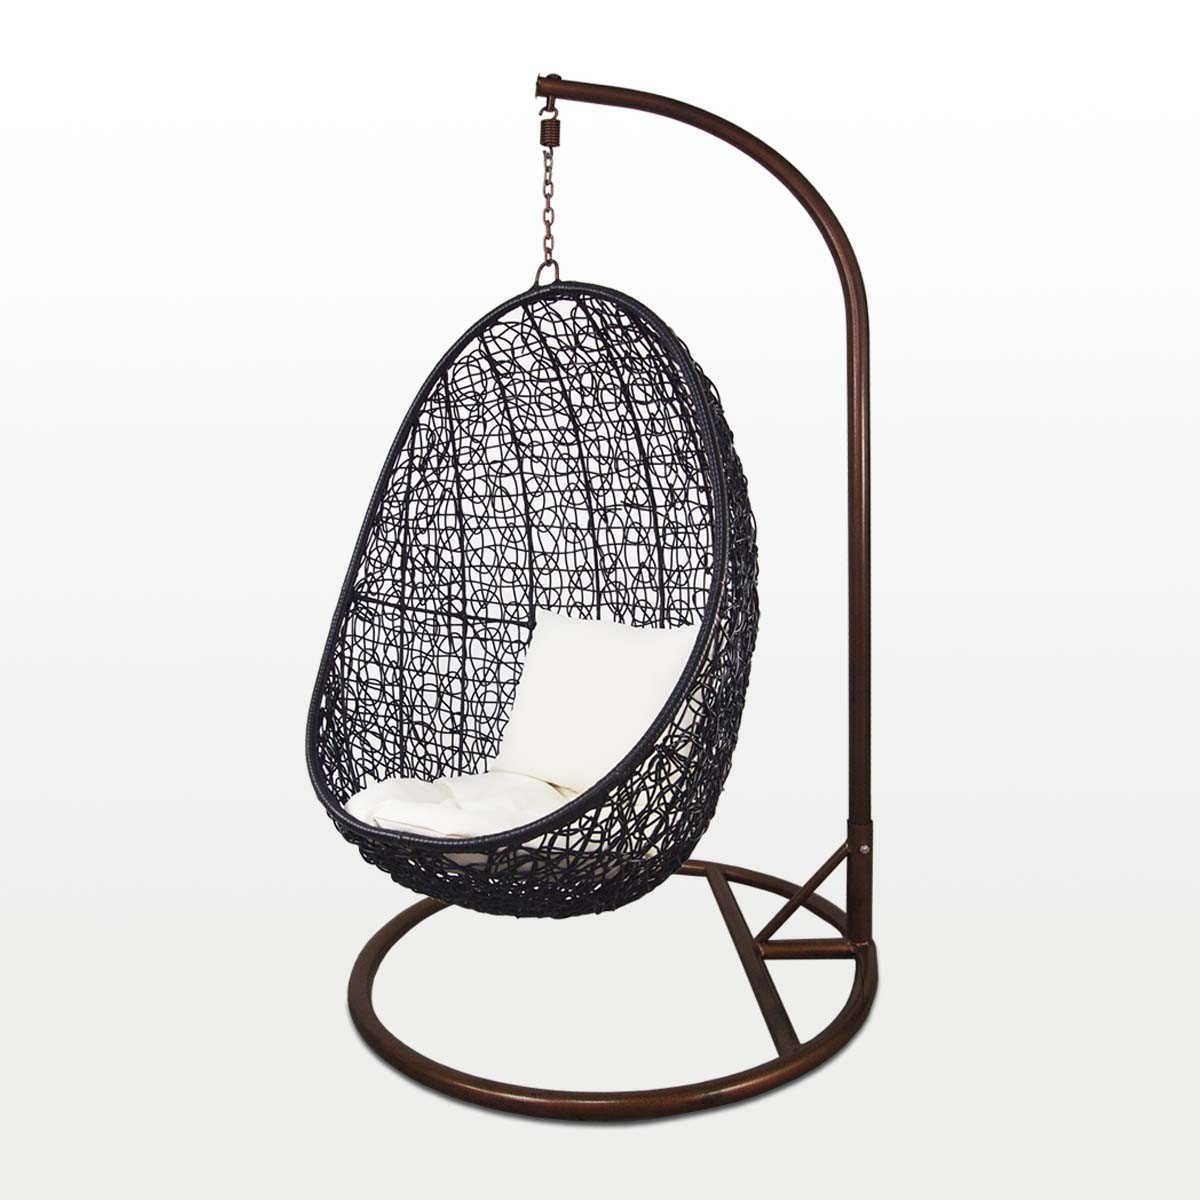 garden swing chair singapore bedroom under £100 black cocoon white cushion outdoor